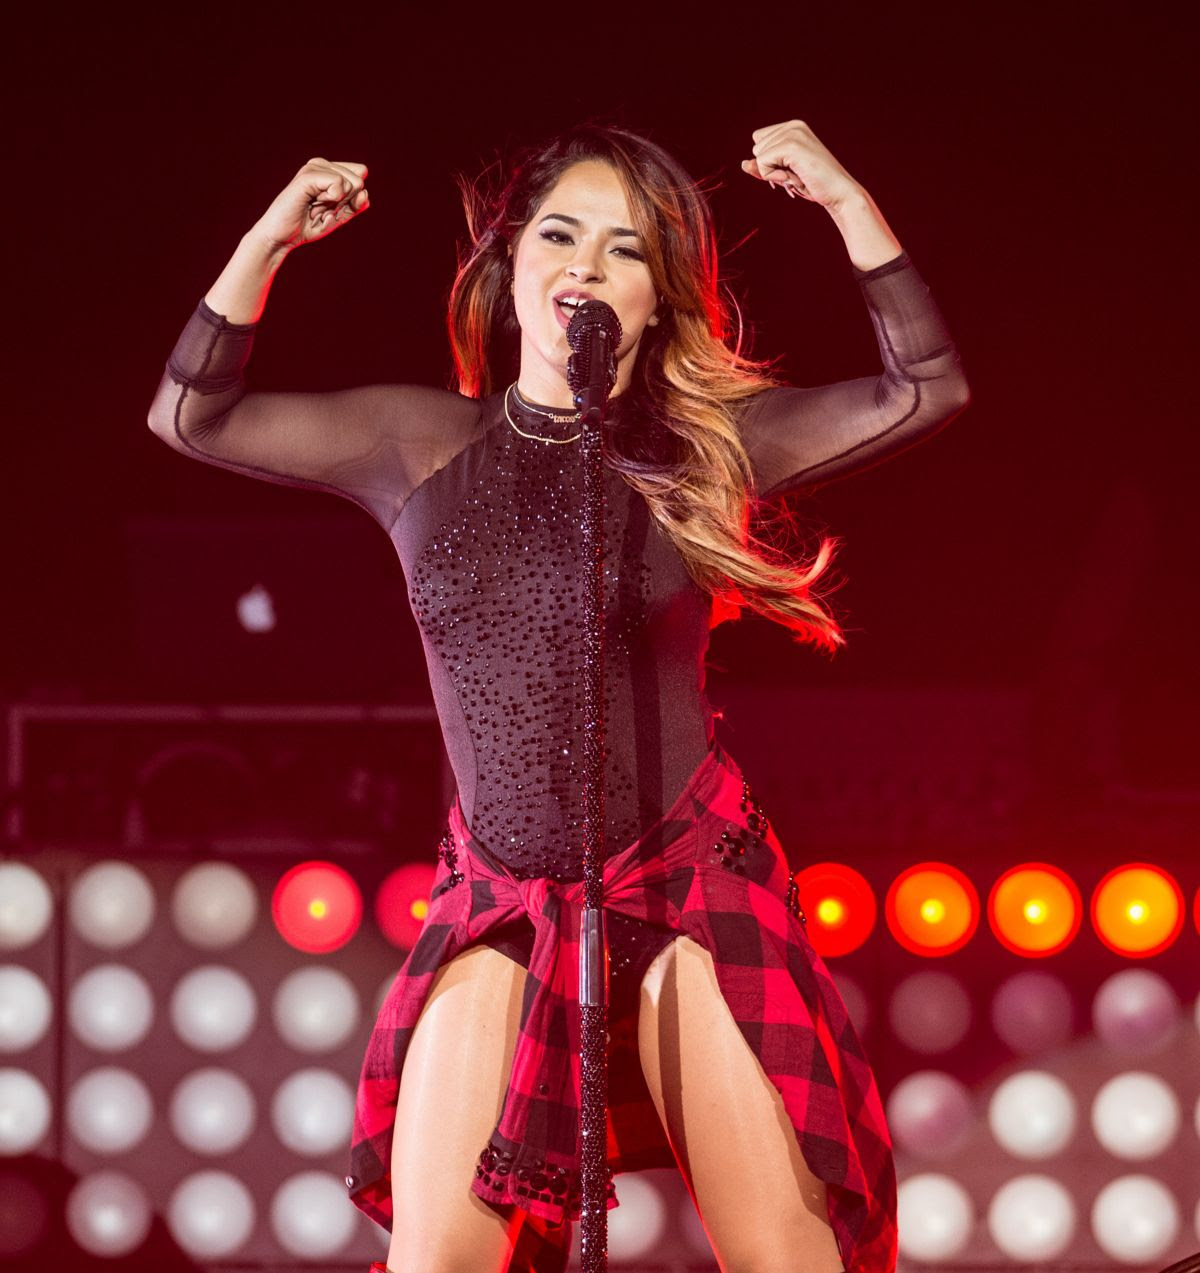 BECKY G Performs at Hard Rock Hotel & Casino in Las Vegas 10/24/15